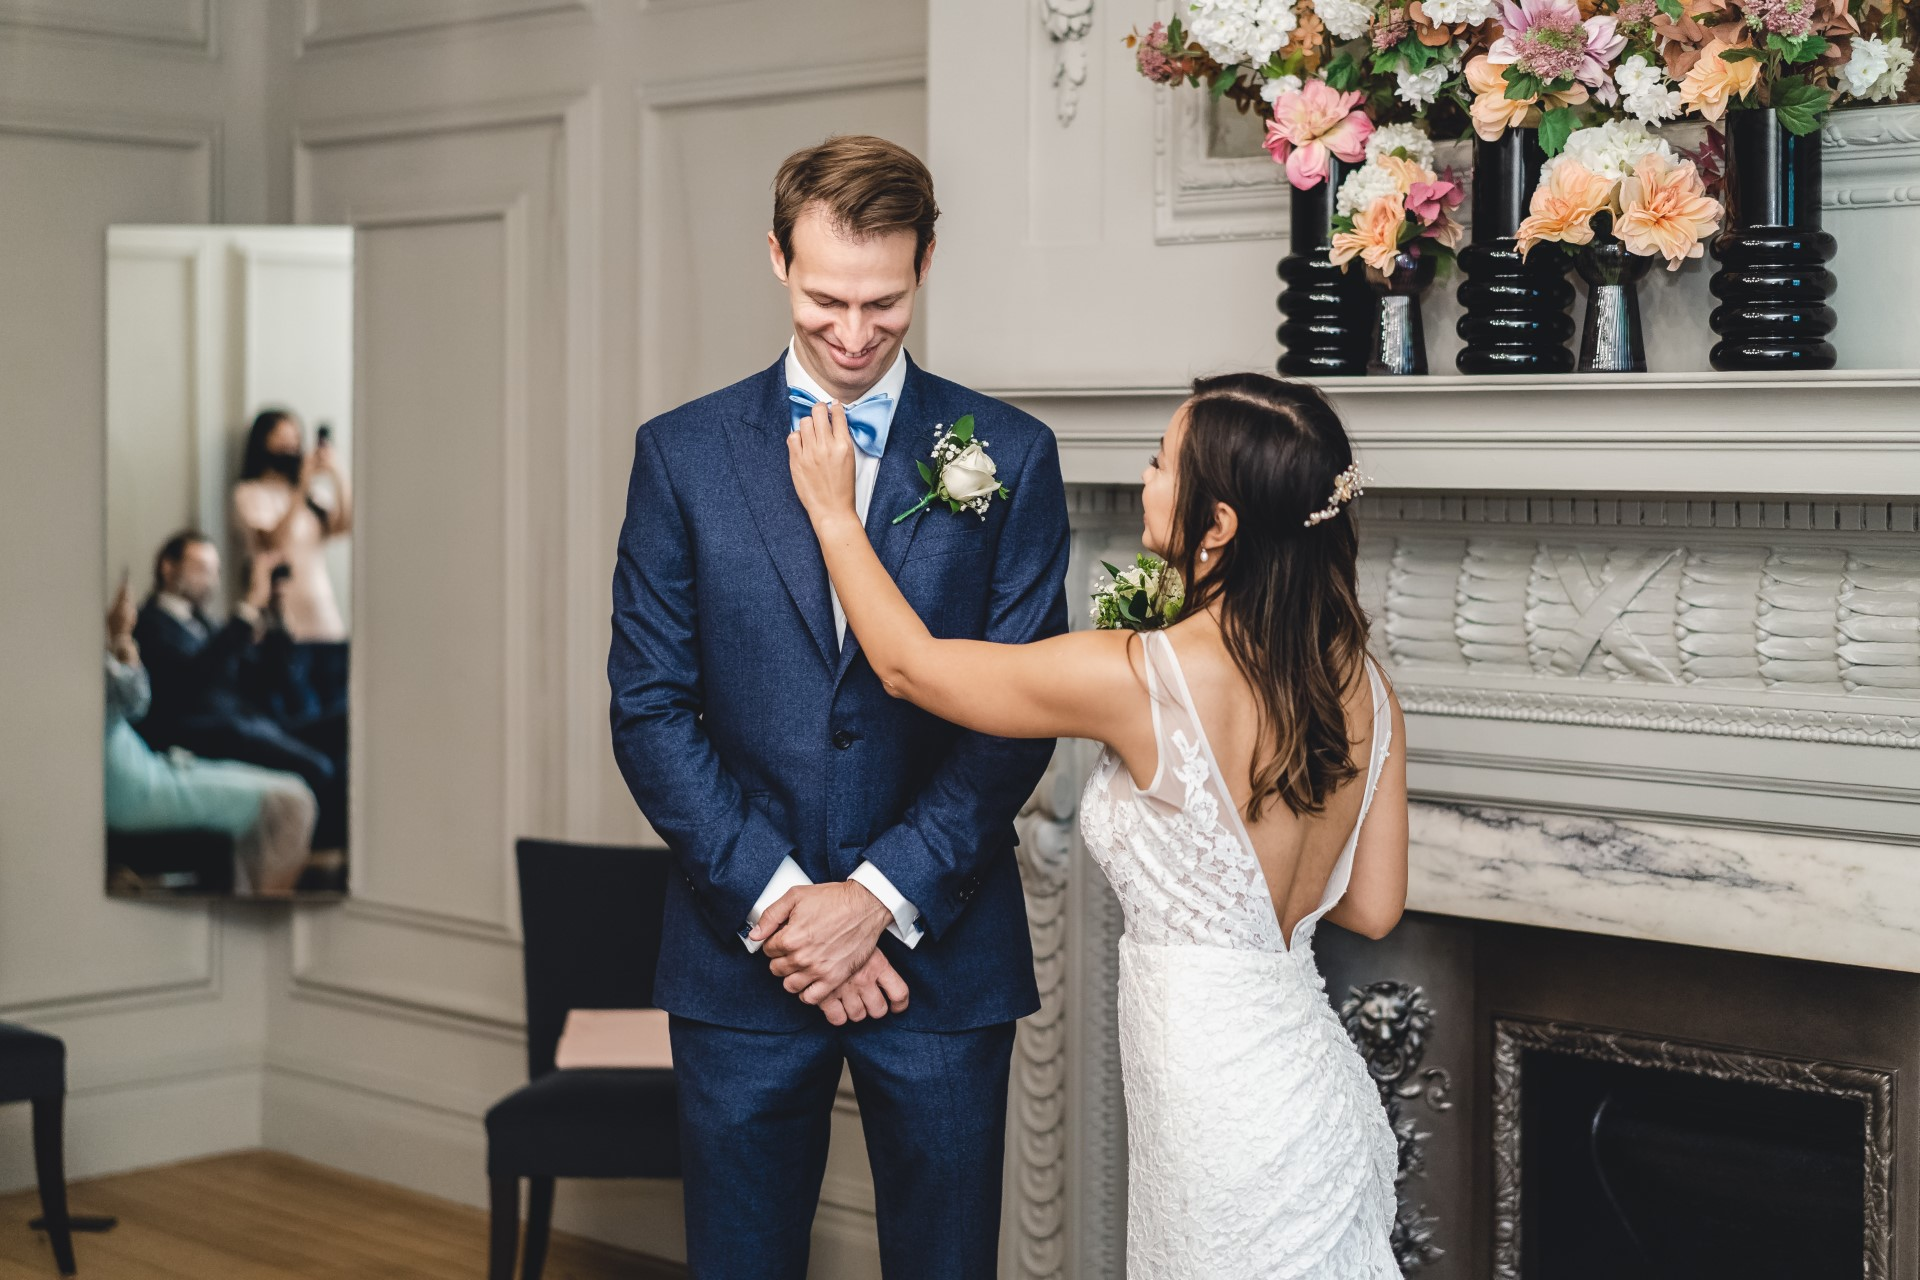 Old Marylebone Town Hall Weddings - London Photographer | The bride makes one last adjustment